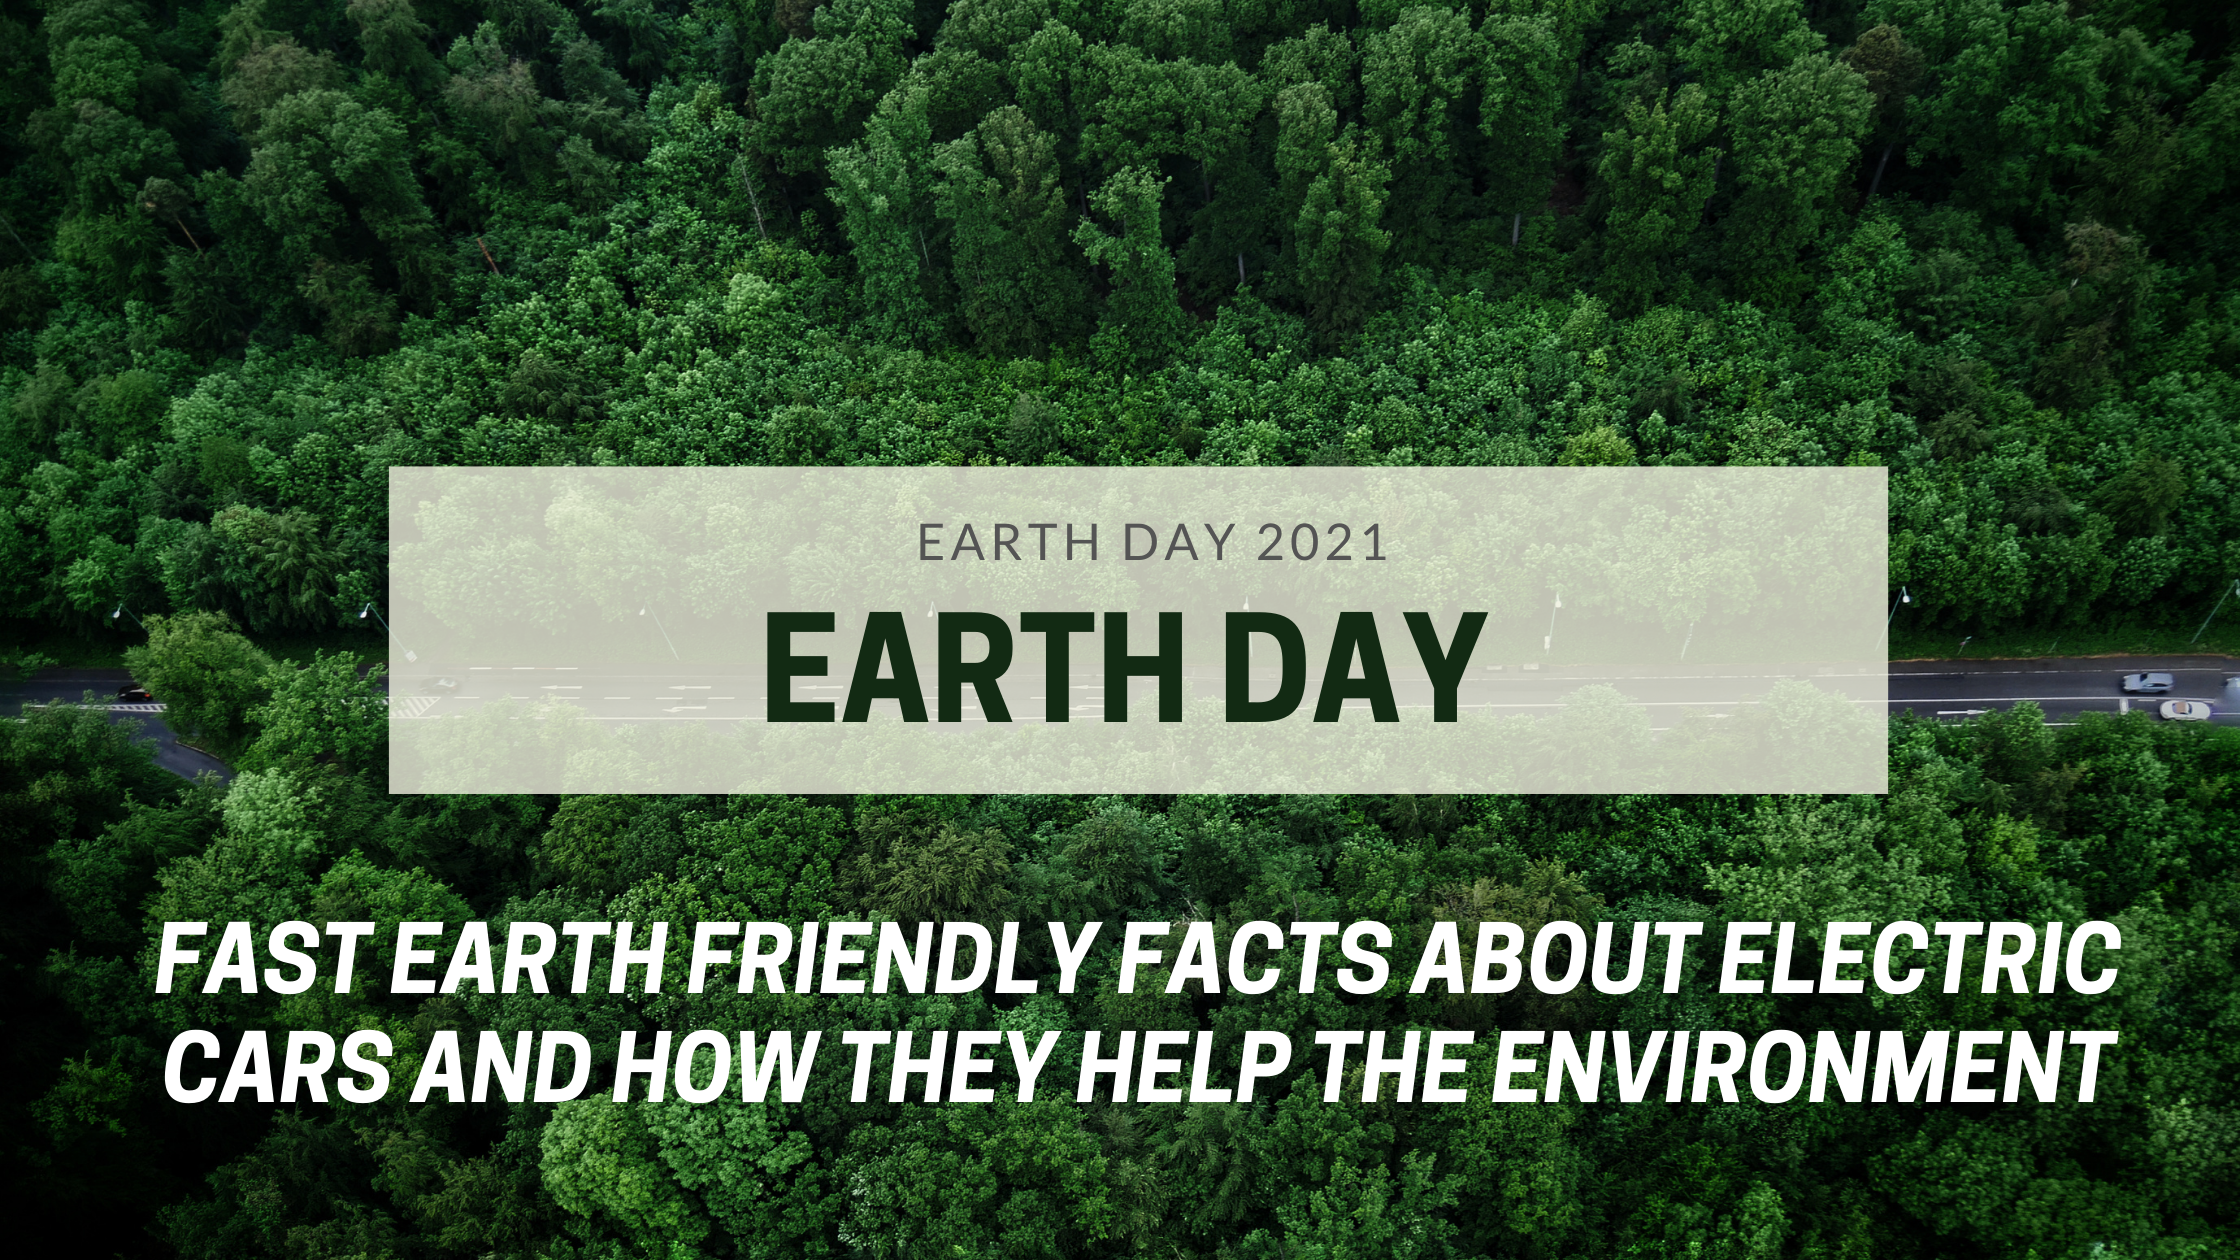 Earth Day: Fast Earth Friendly Facts about Electric Cars and how they help the Environment